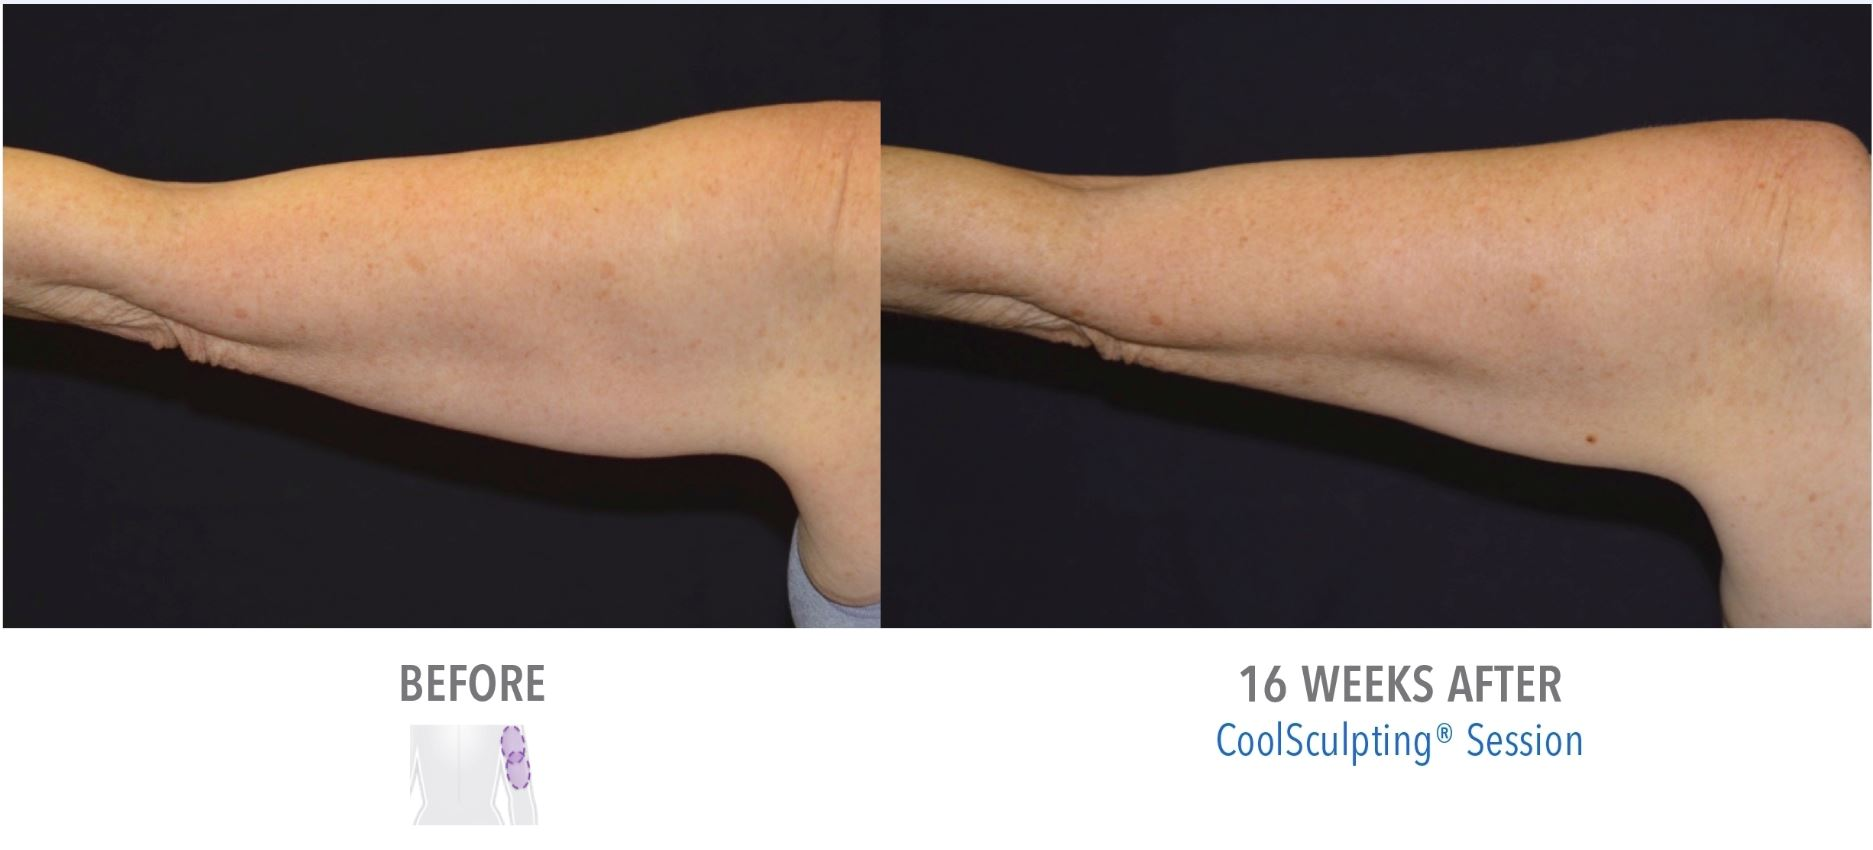 CoolSculpting Arms Before After Result